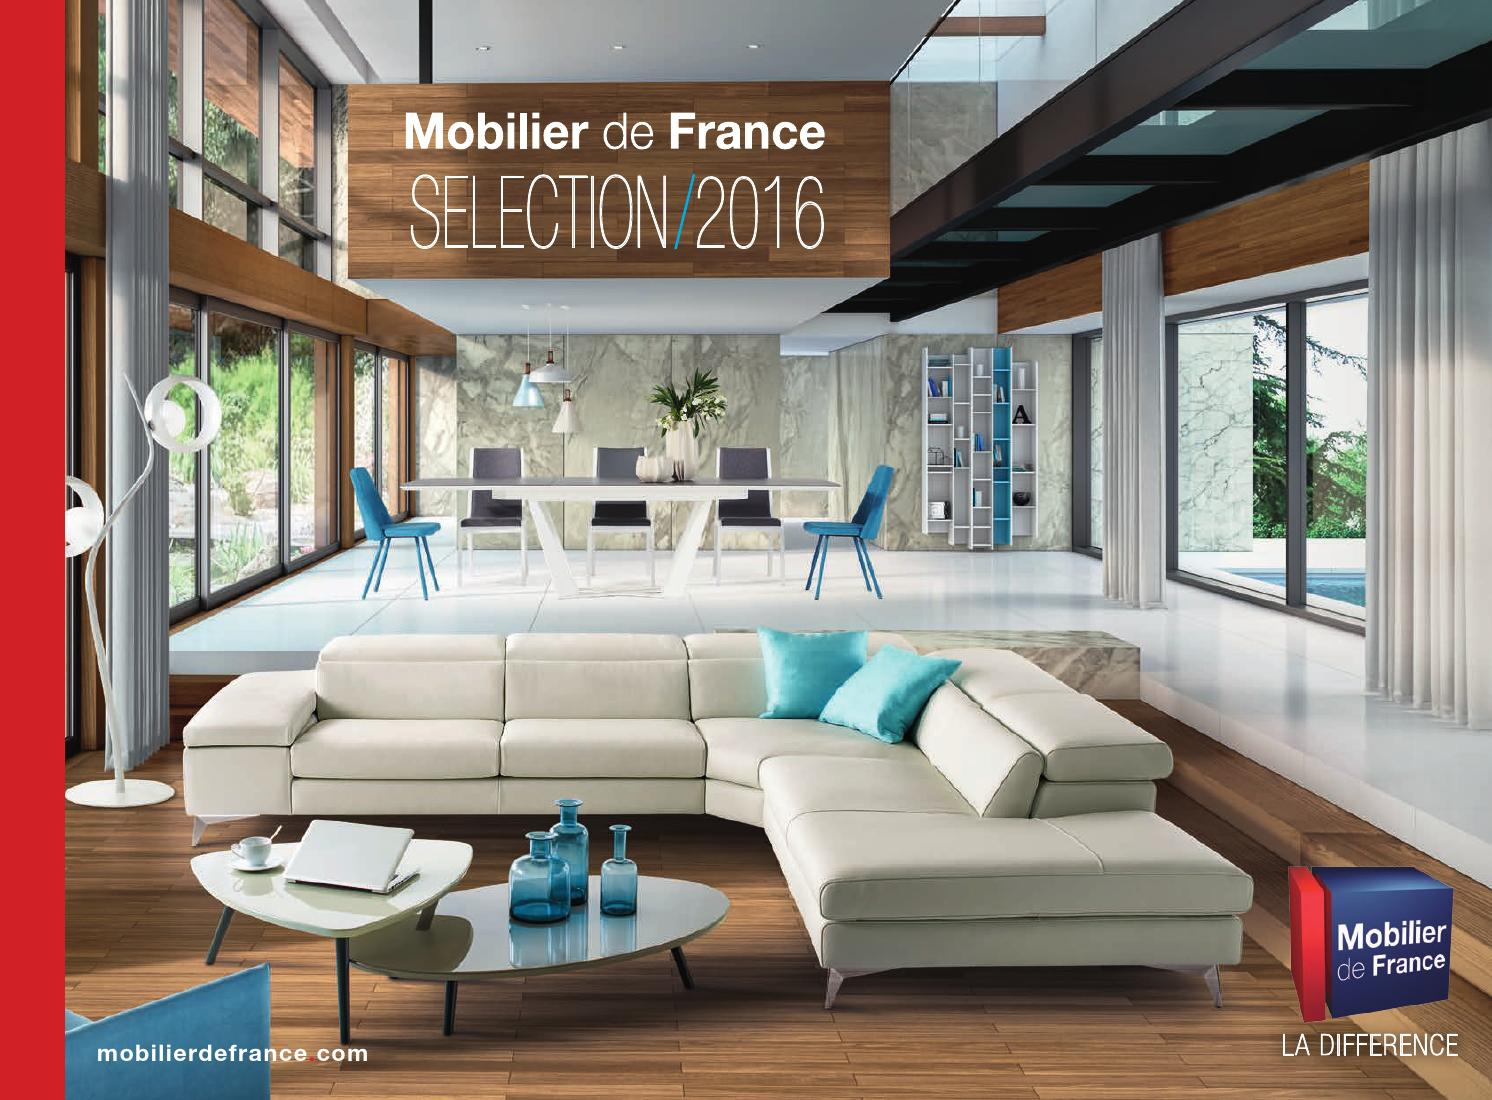 Mobilier de france catalogue 2016 by communication issuu for La halle au canape